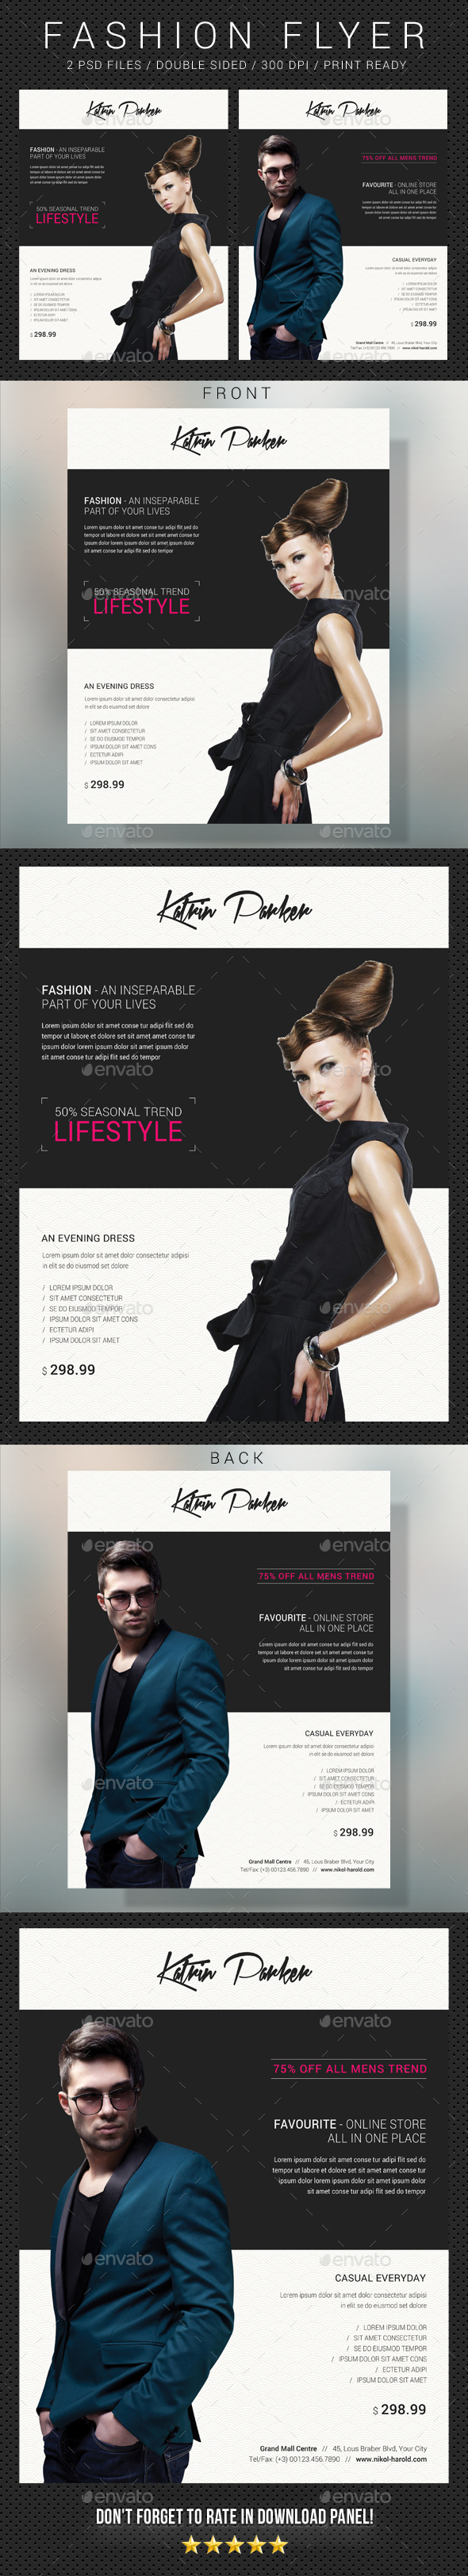 Fashion Flyer 15 - Commerce Flyers